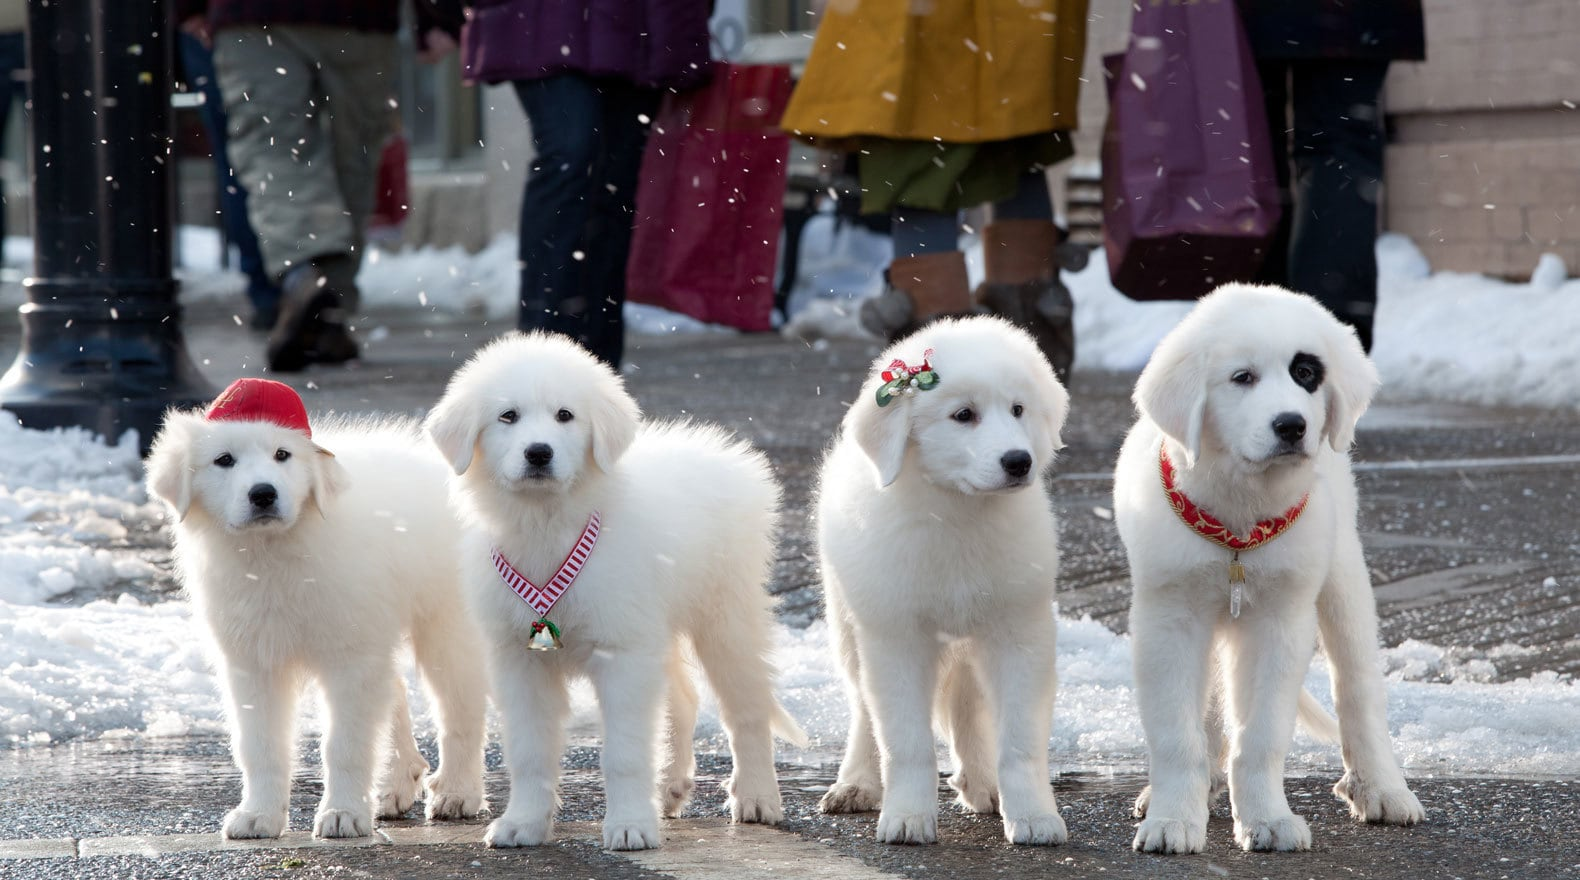 Santa Pups standing in the street in the movie Santa Paws 2: The Santa Pups